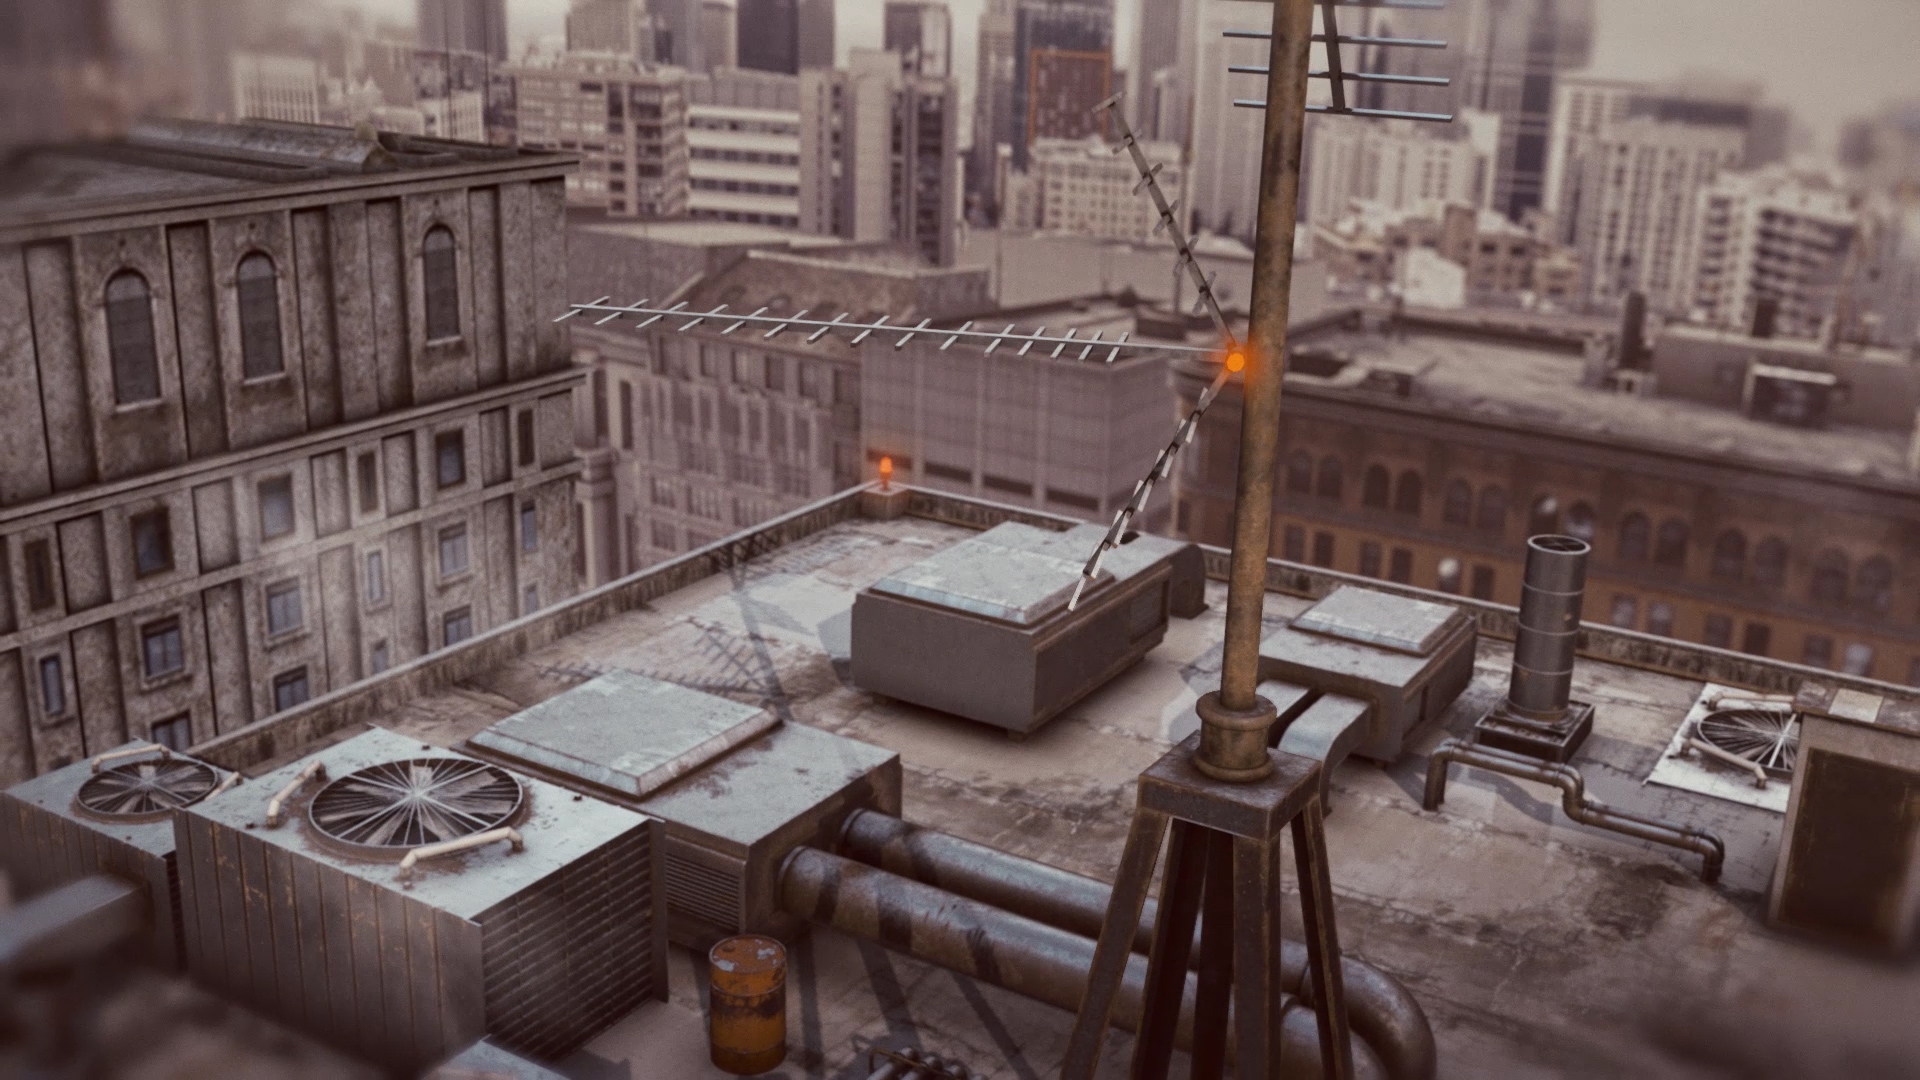 Flying Over Building Rooftop With Cooling Ventilation